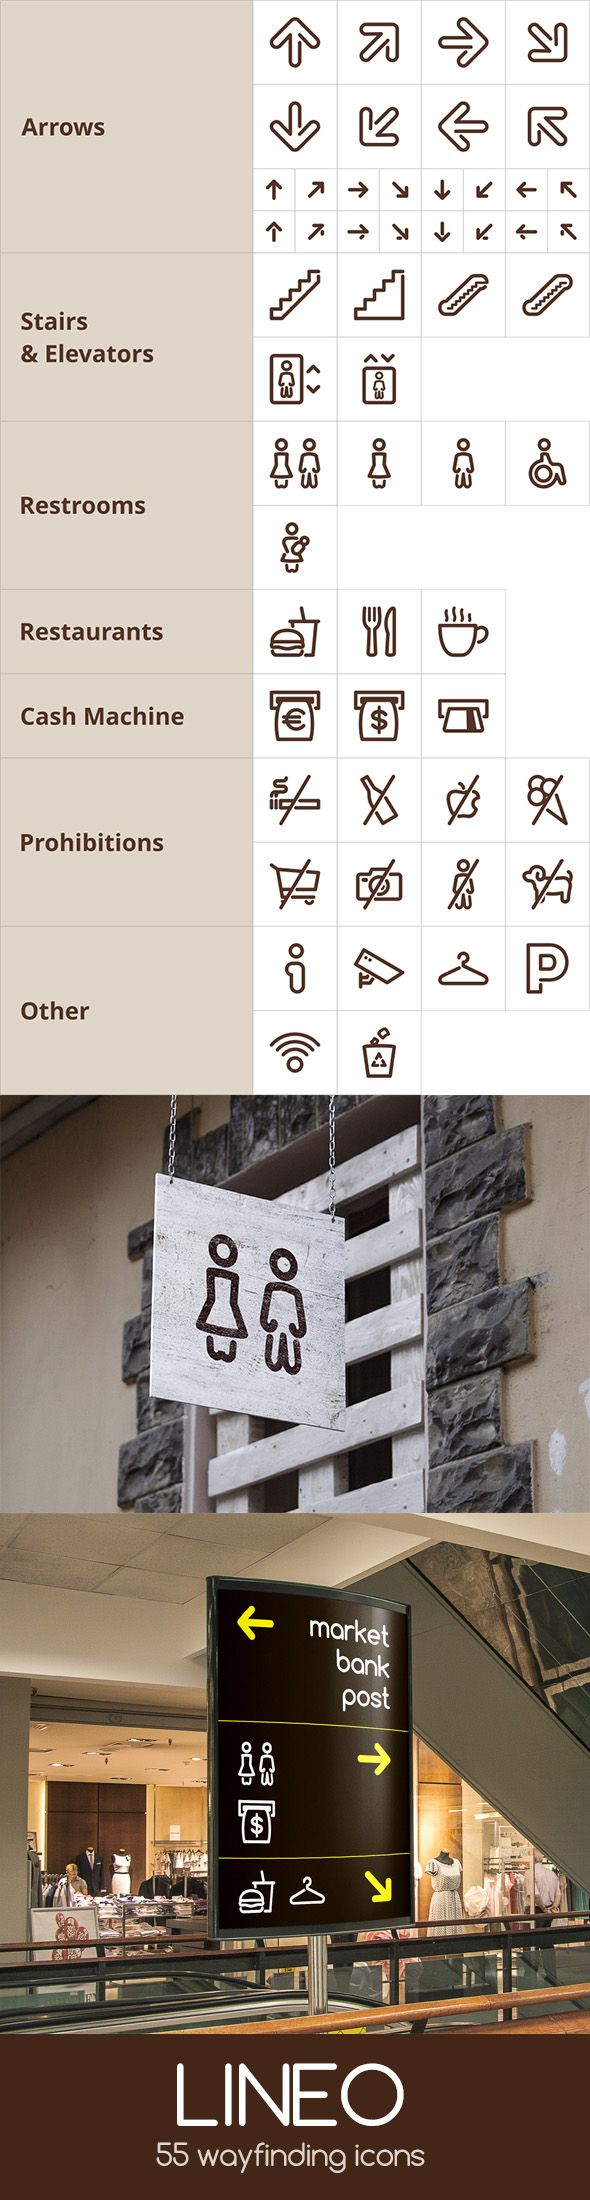 Lineo - 55 Wayfinding Icons by KacperNowek on DeviantArt